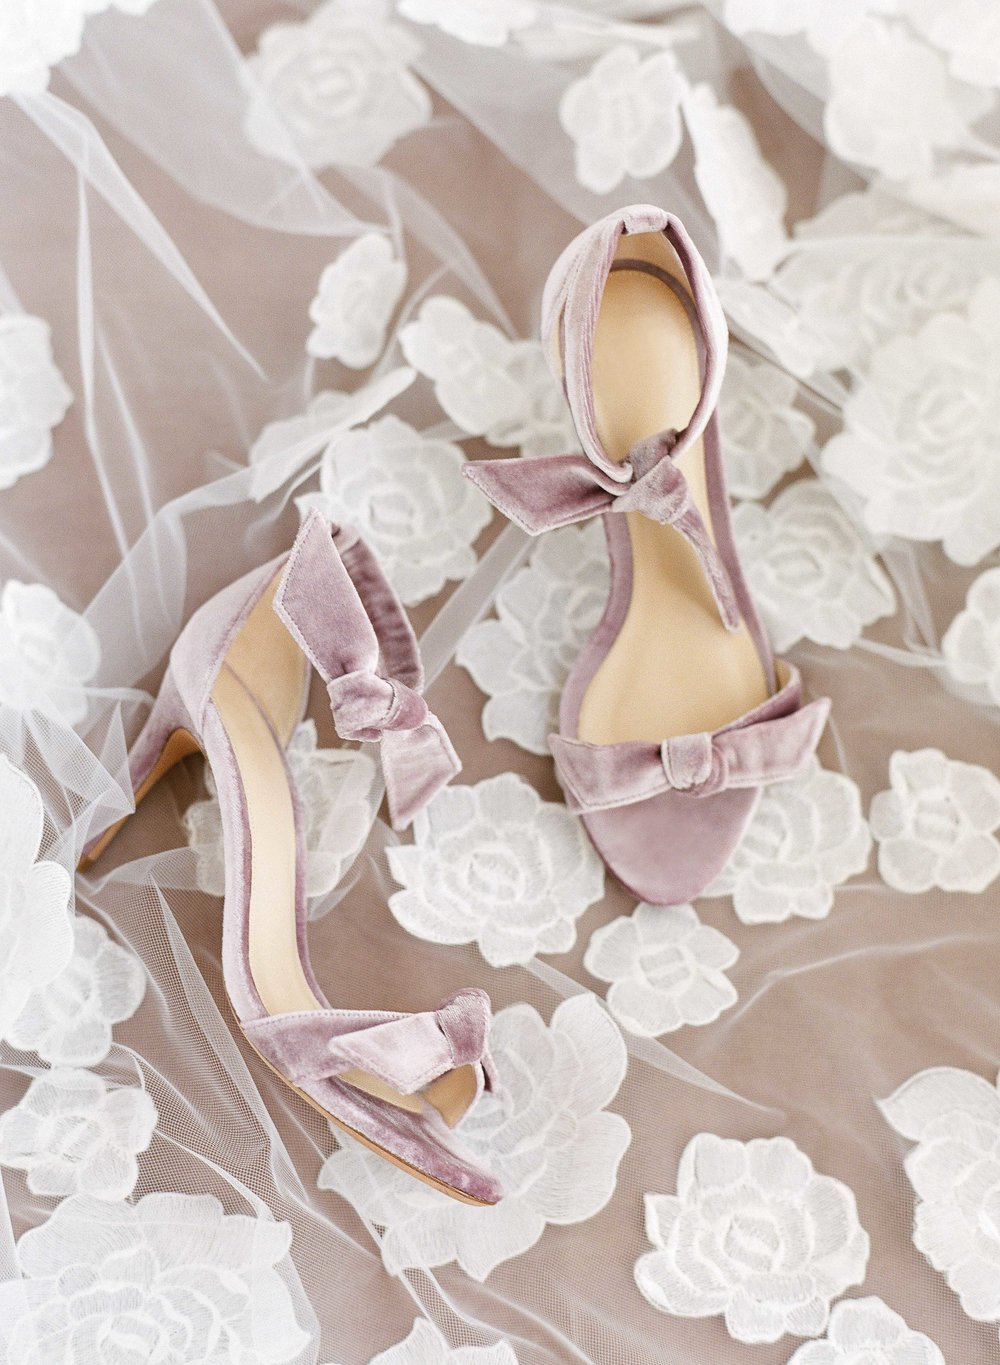 rebecca-clay-wedding-north-carolina-heels-103228795.jpg